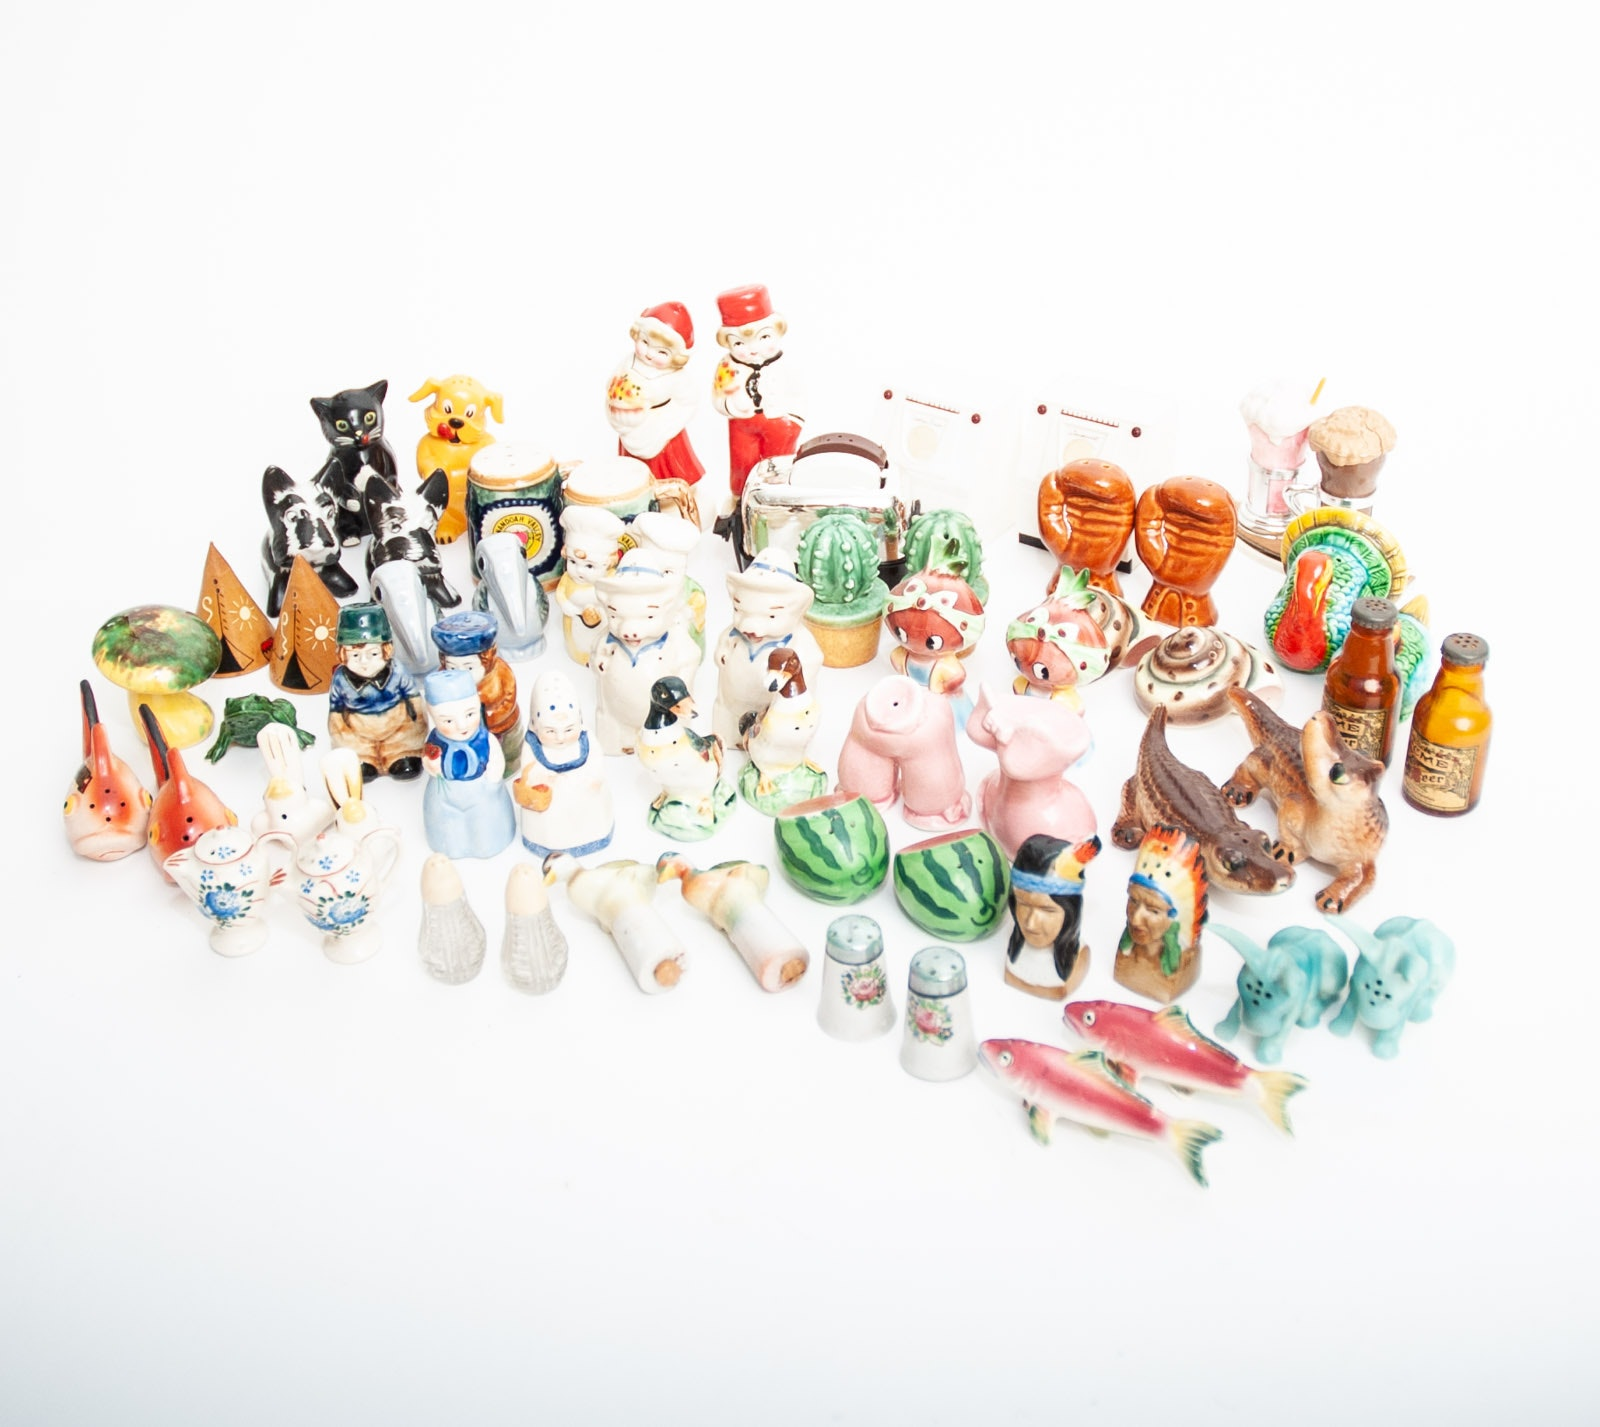 Mid Century Novelty Salt and Pepper Shaker Collection